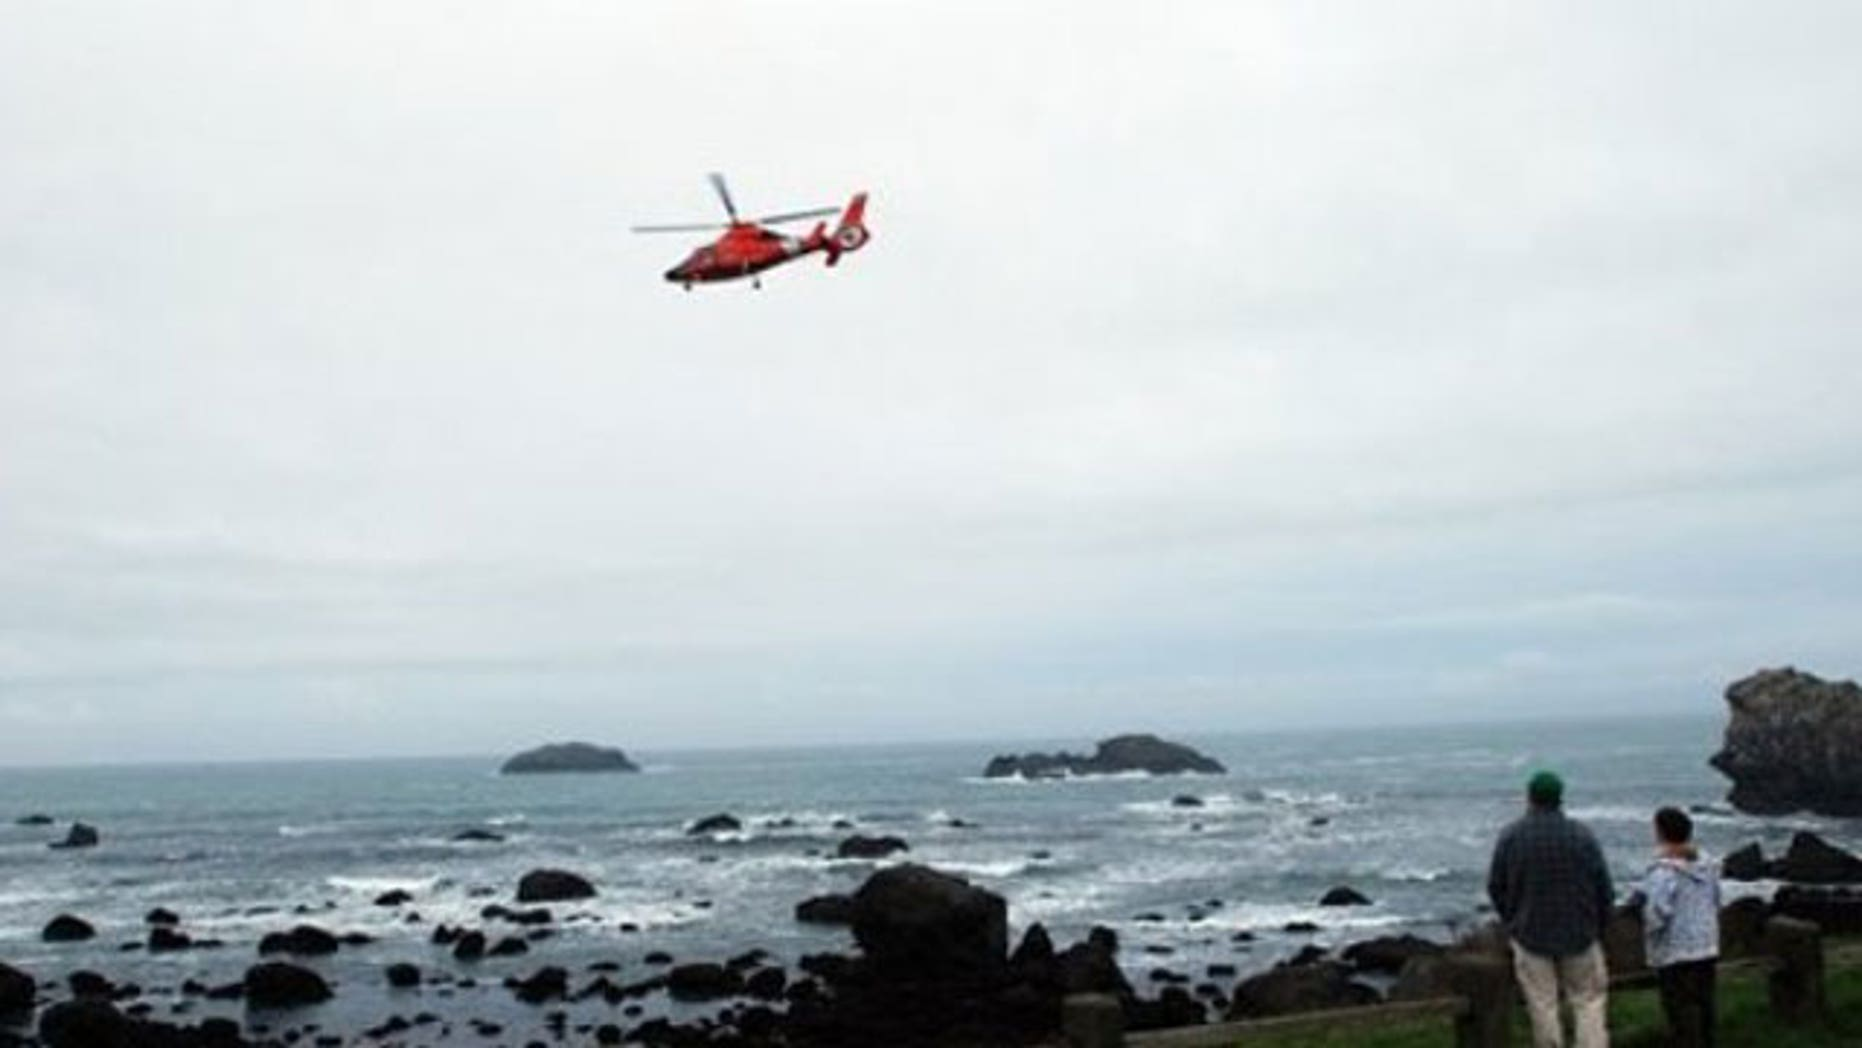 In this March 11, 2011 photo a Coast Guard MH-65 helicopter flies above Pebble Beach in Crescent City, Calif.